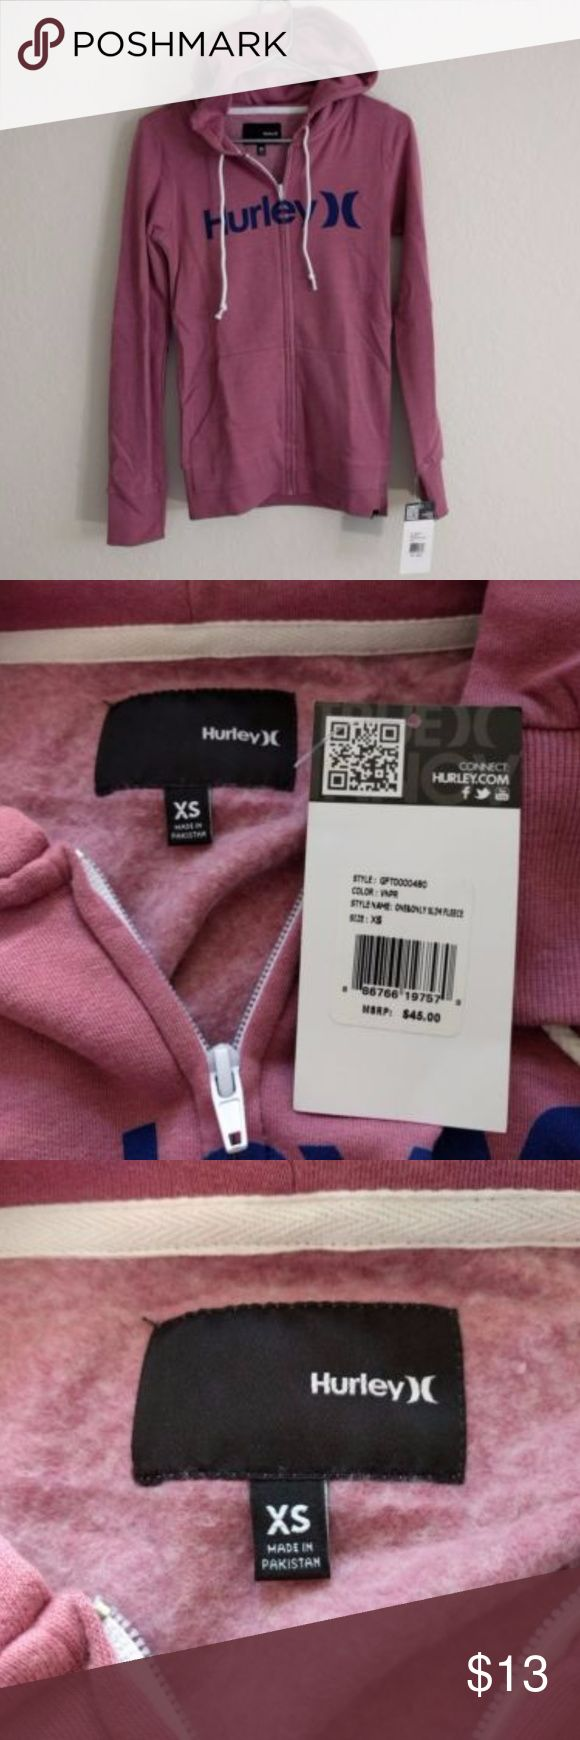 """NWT XS Hurley Pink """"One & Only"""" Zip Up Hoodie Selling an Extra Small Hurley Women's Pink """"One & Only"""" Slim Zip-Up Fleece. Fleece is new with tags, and has never been worn or used. Any other questions please ask. Hurley Sweaters"""